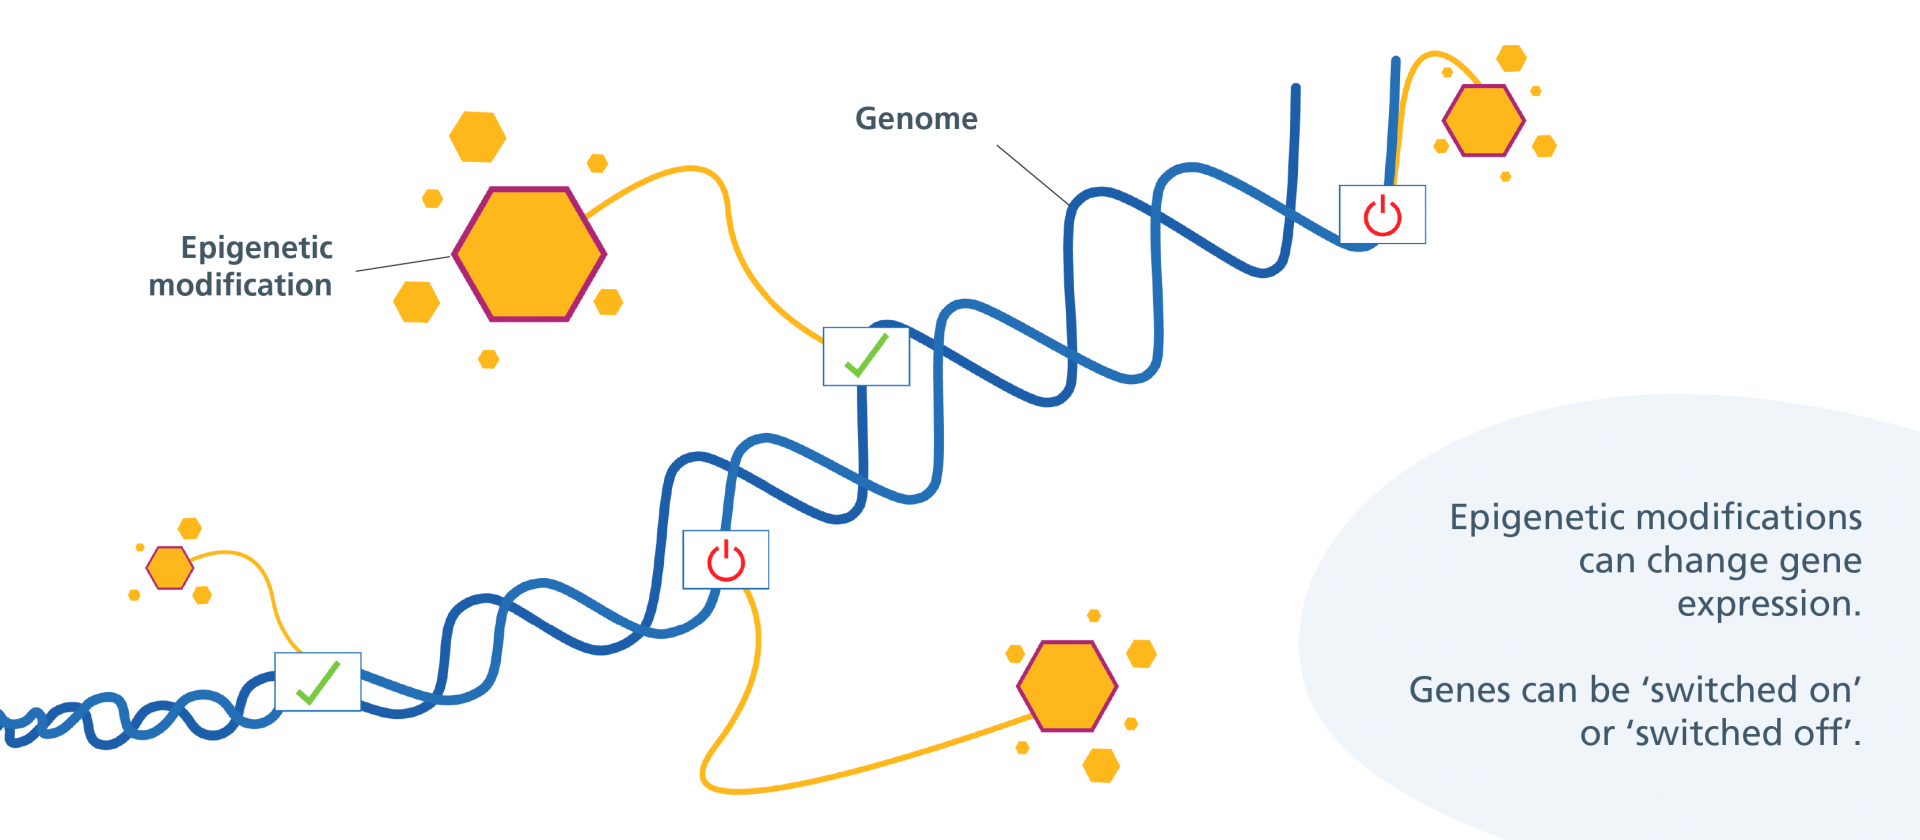 Epigenetic modifications changing gene expression: turning some genes 'on' and some genes 'off'.